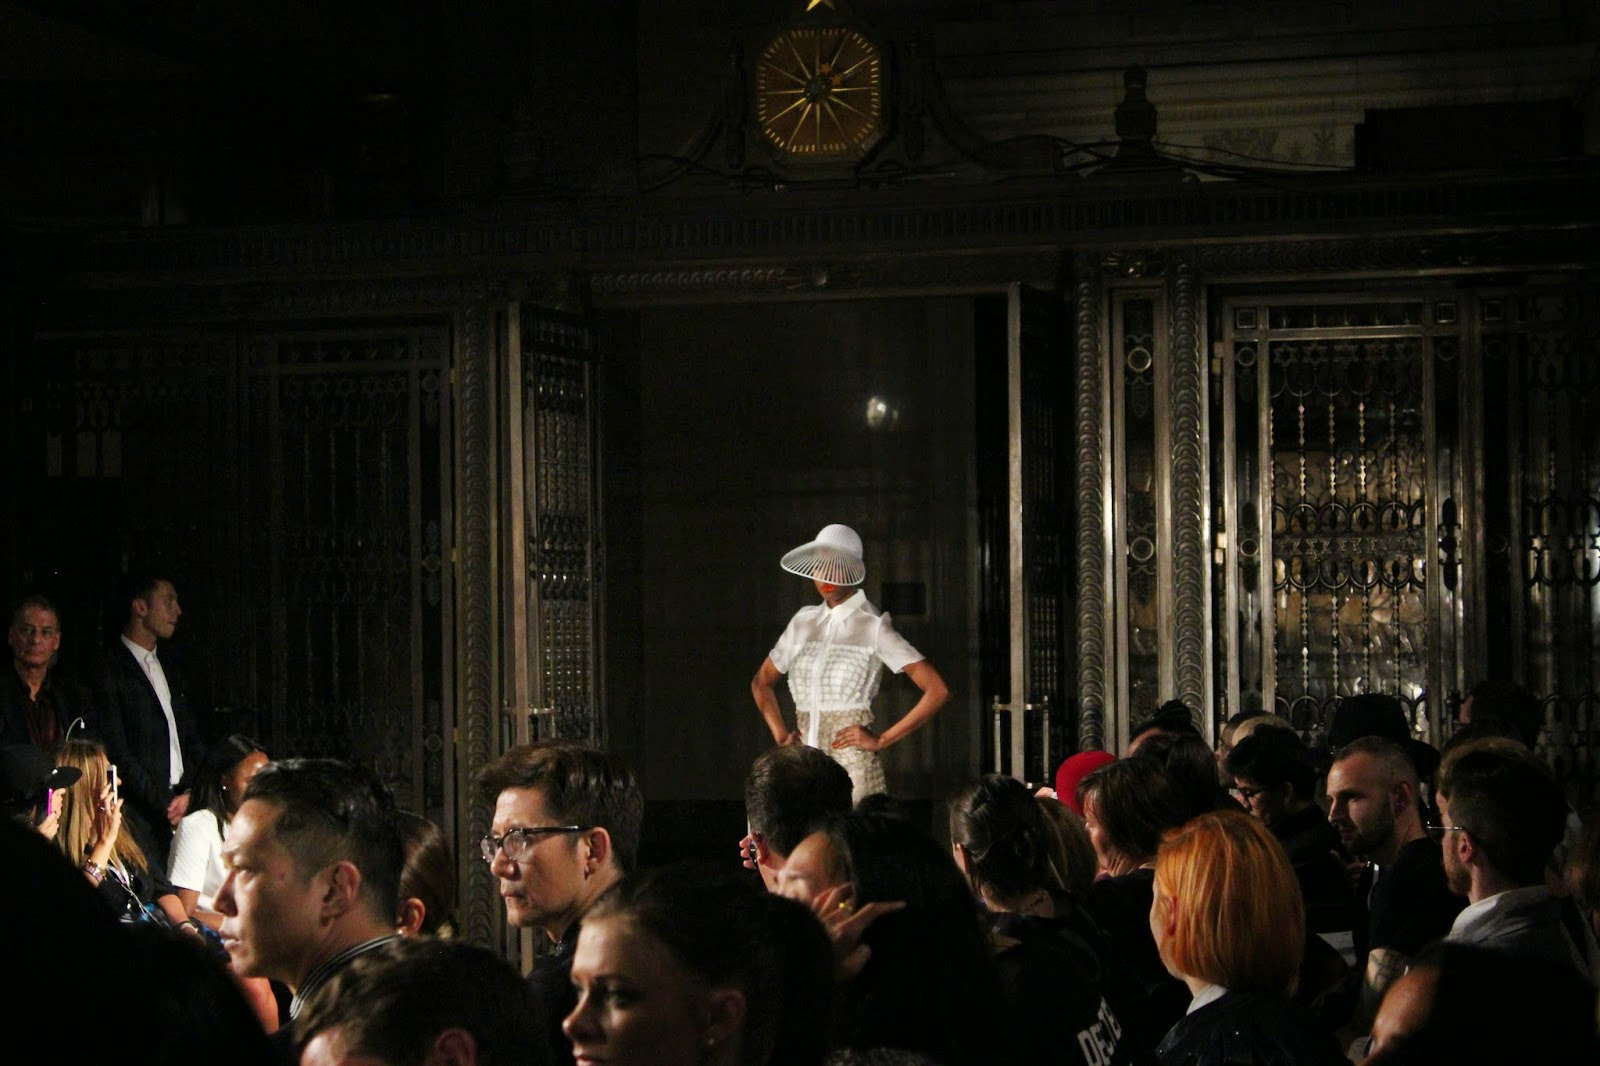 london-fashion-week-2014-lfw-spring-summer-2015-blogger-fashion-freemasons hall-fashion-scout-ashley-isham-catwalk-models-shirt-dress